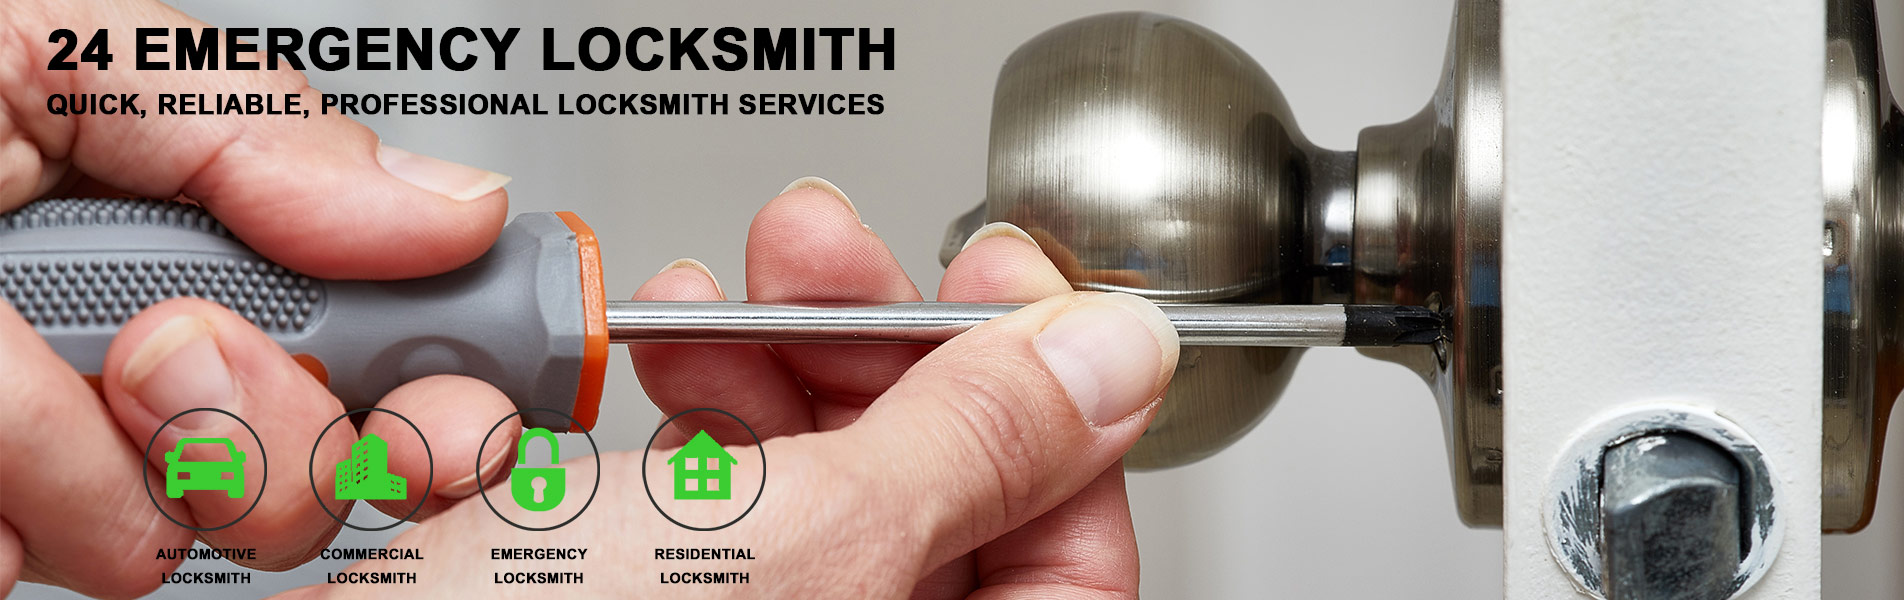 Expert Locksmith Services Forest Hills, NY 718-673-6786